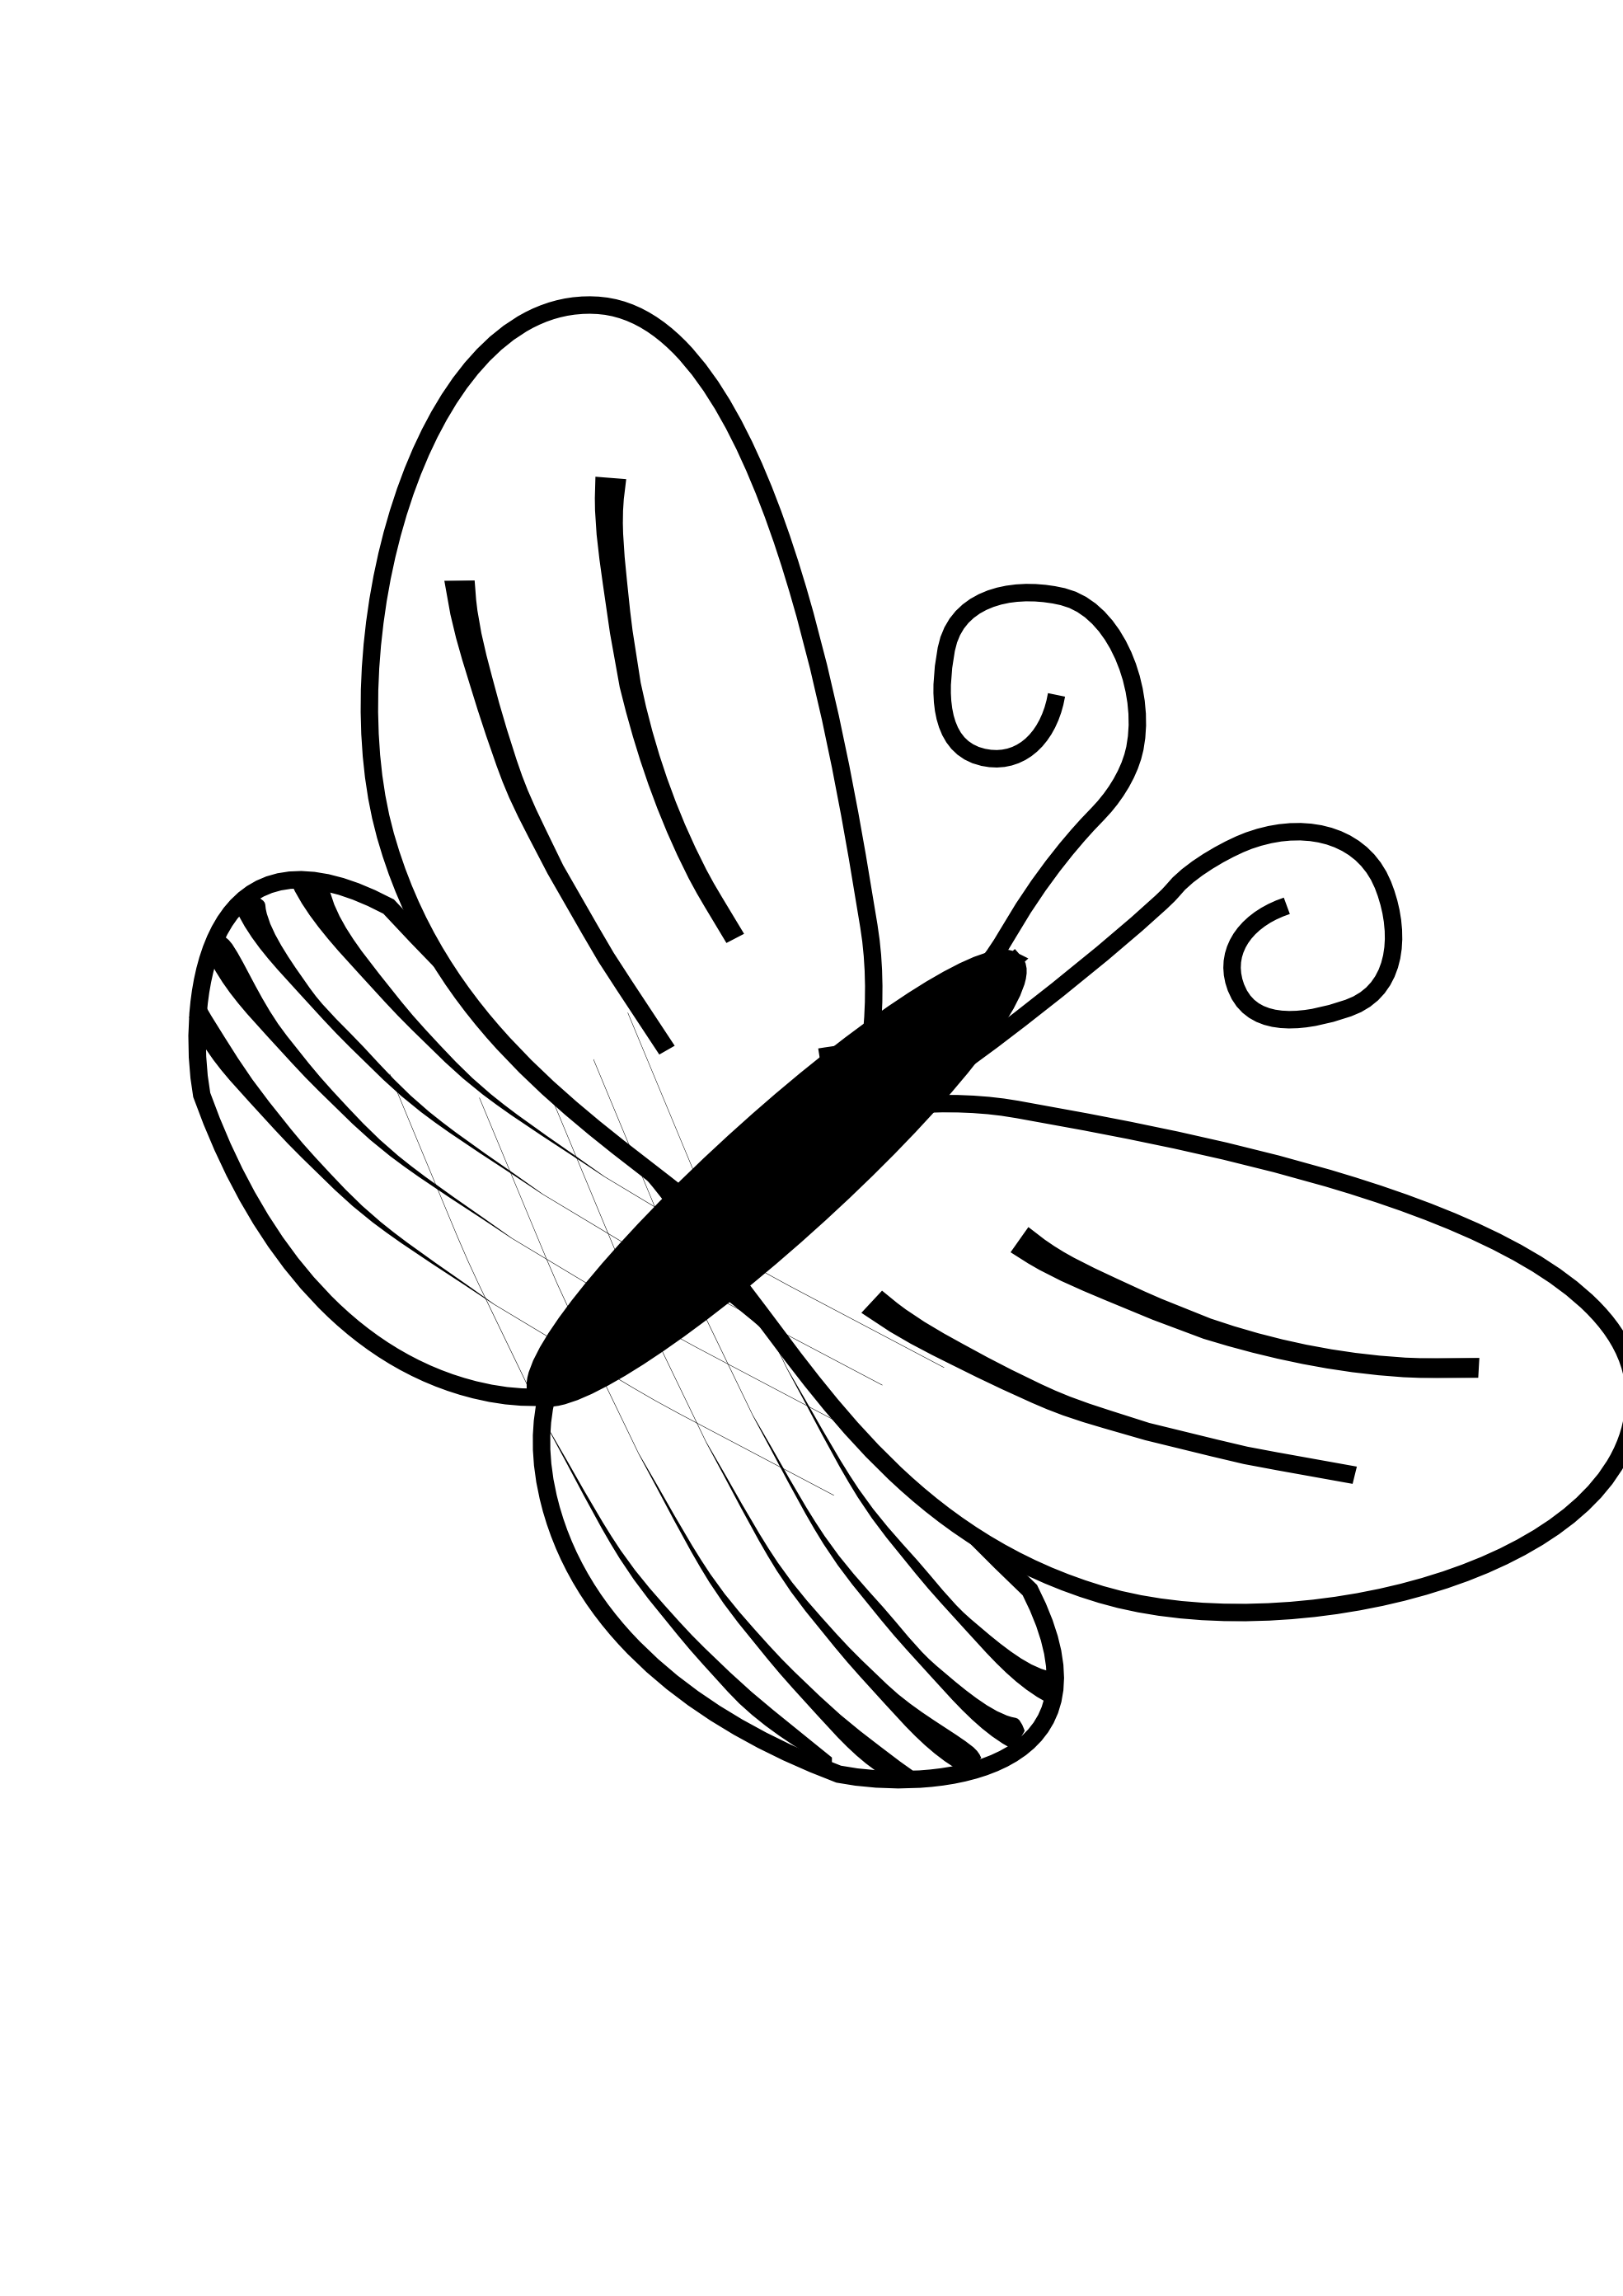 Butterfly clip art line drawing. Drawings of butterflies clipart